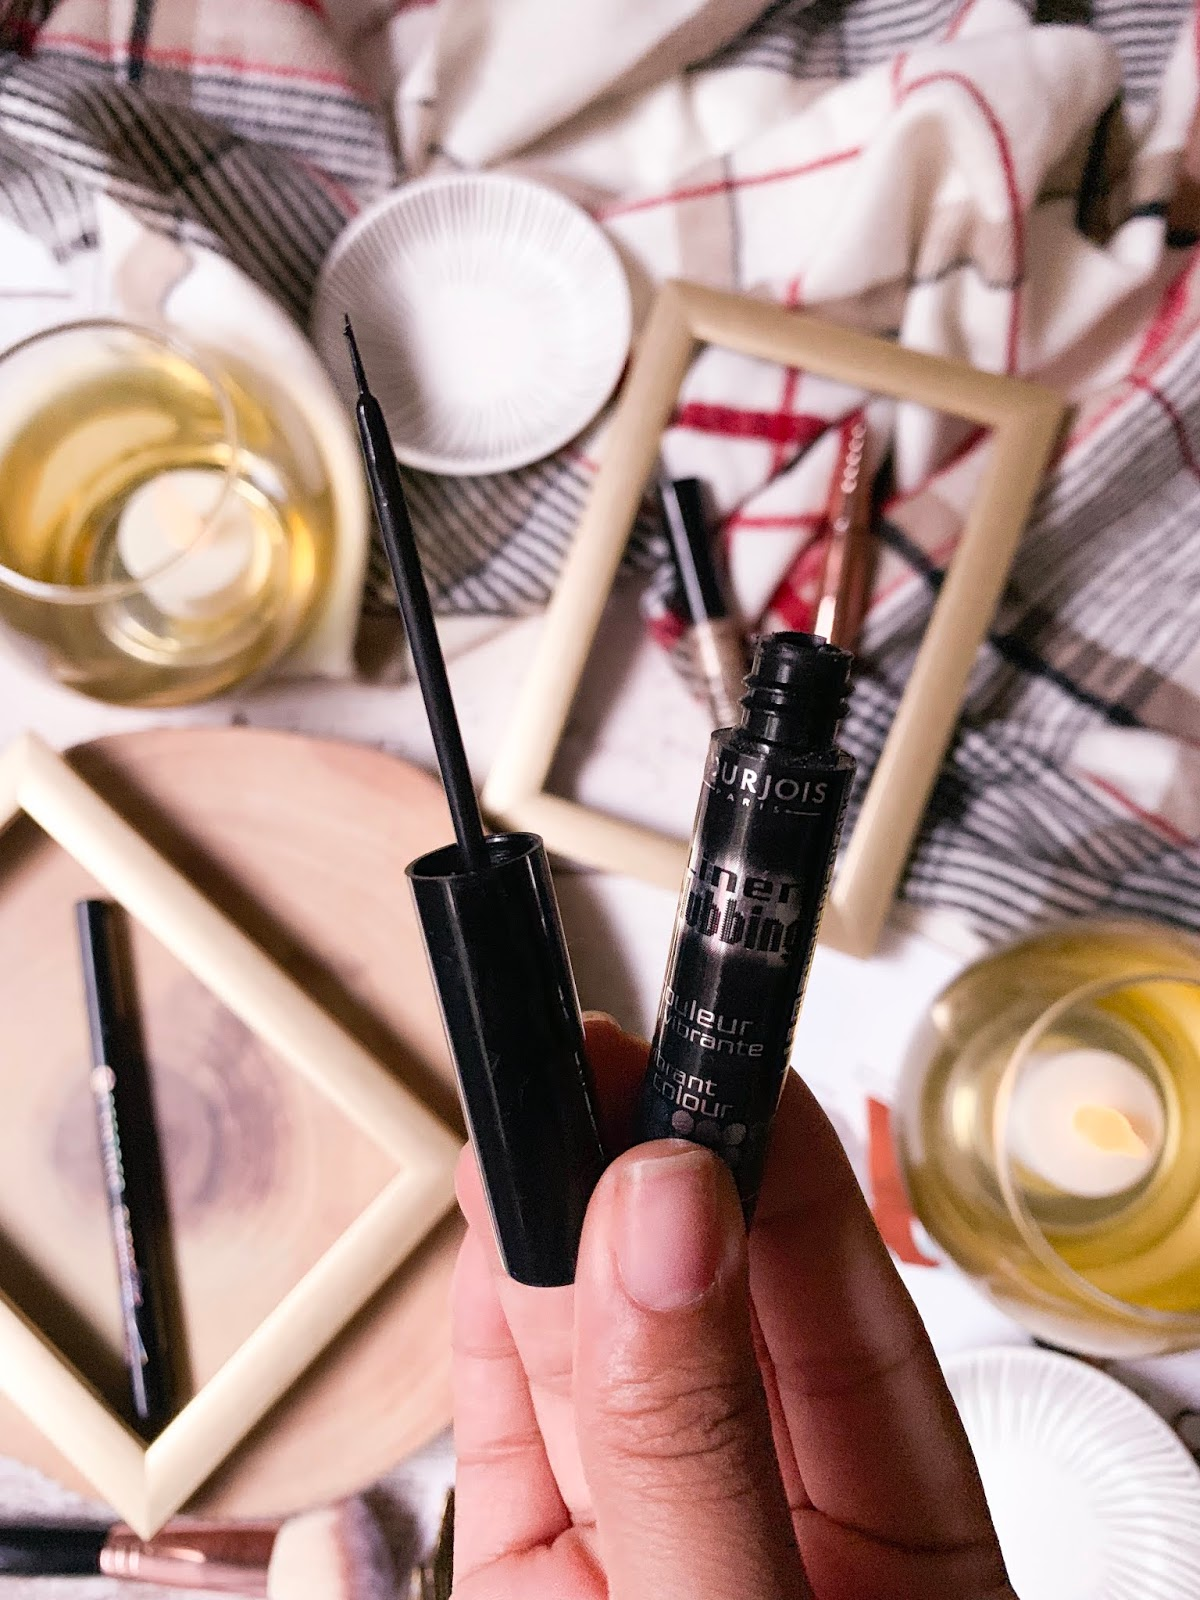 5 Under £5: Liquid Eyeliner - Bourjois